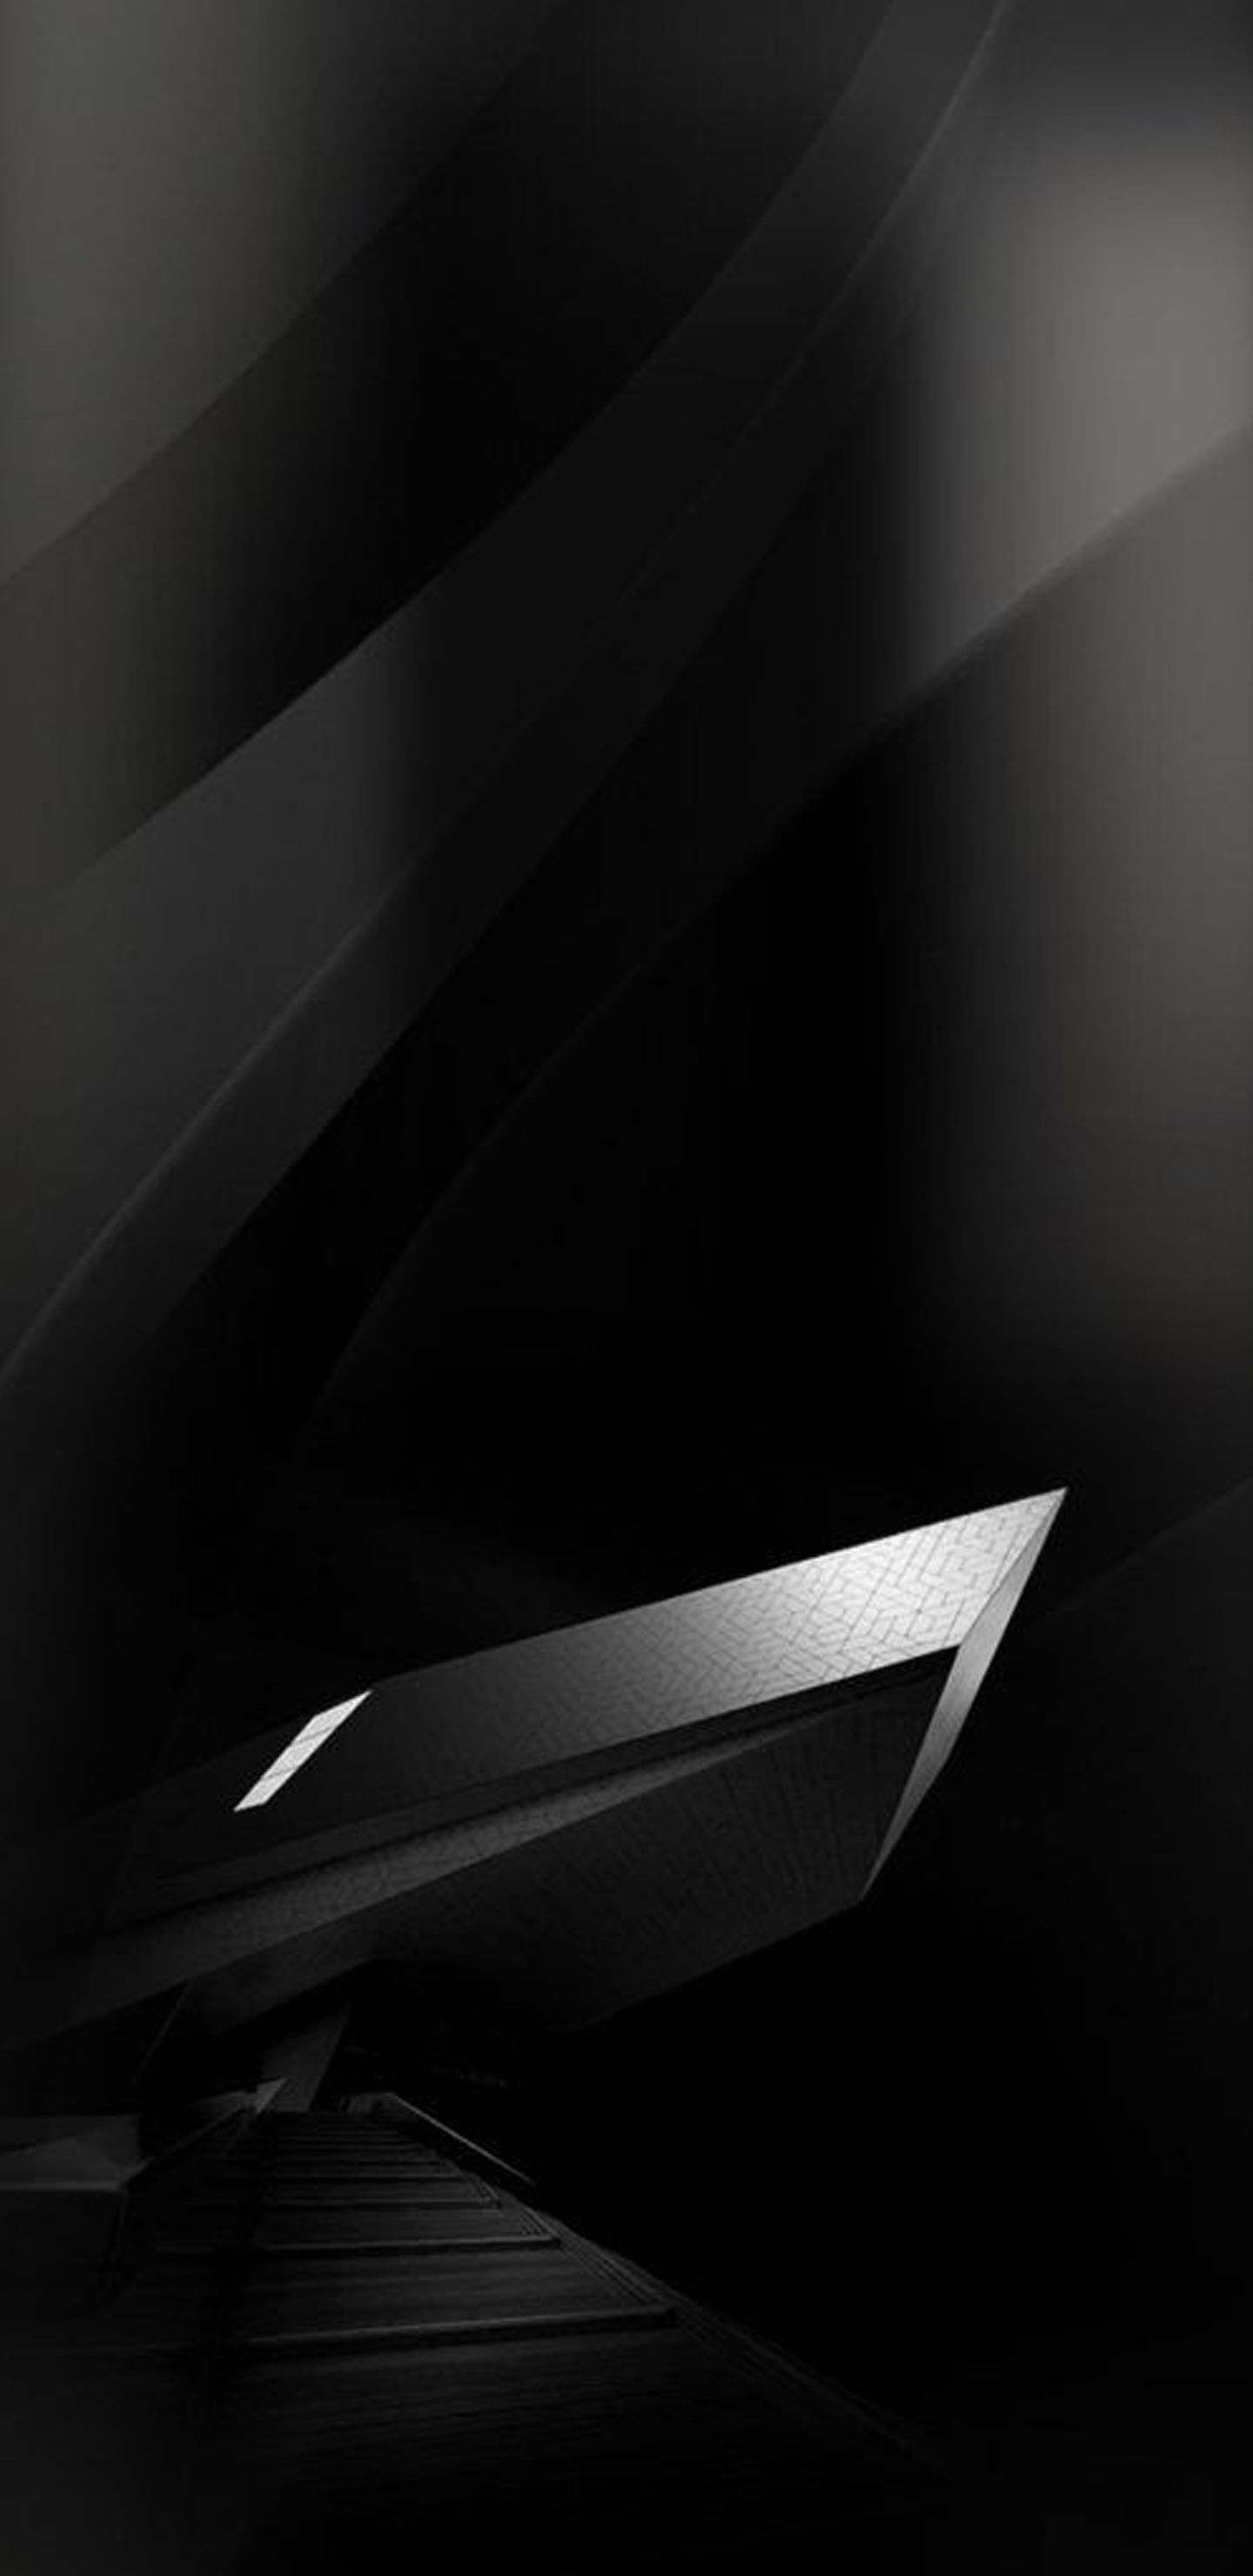 05 of 10 Samsung Galaxy S8 Wallpaper Black and Silver in